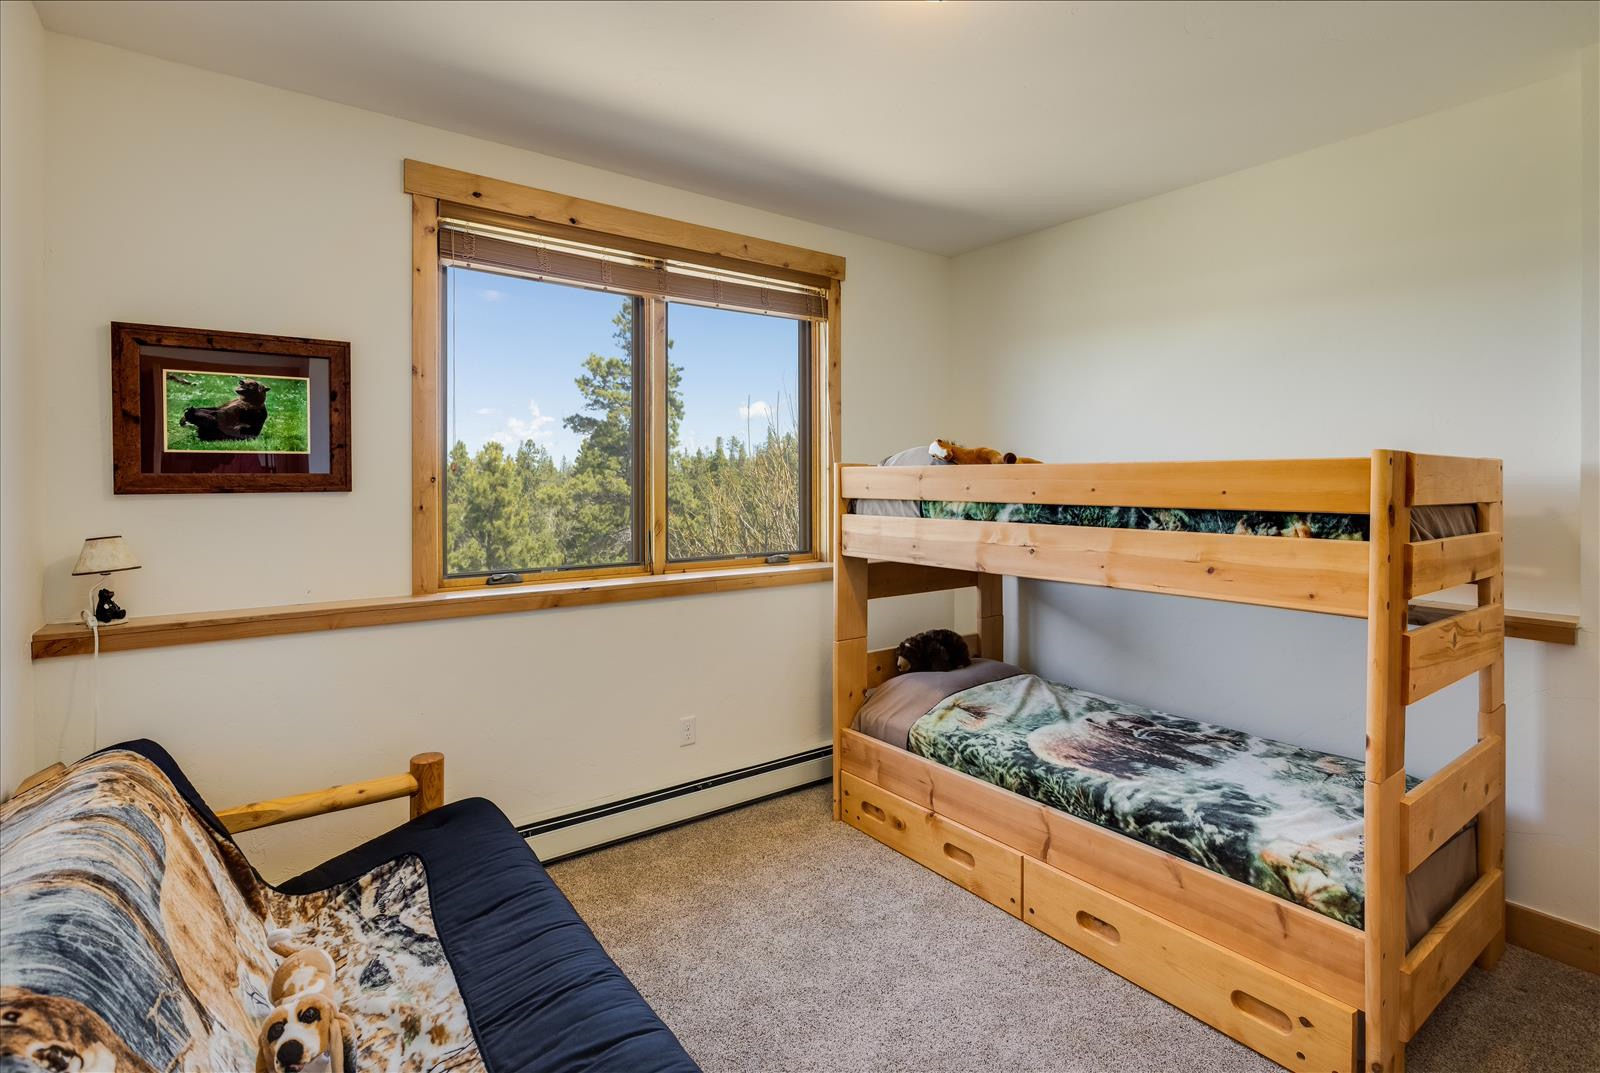 4th bedroom downstairs, bunk beds included